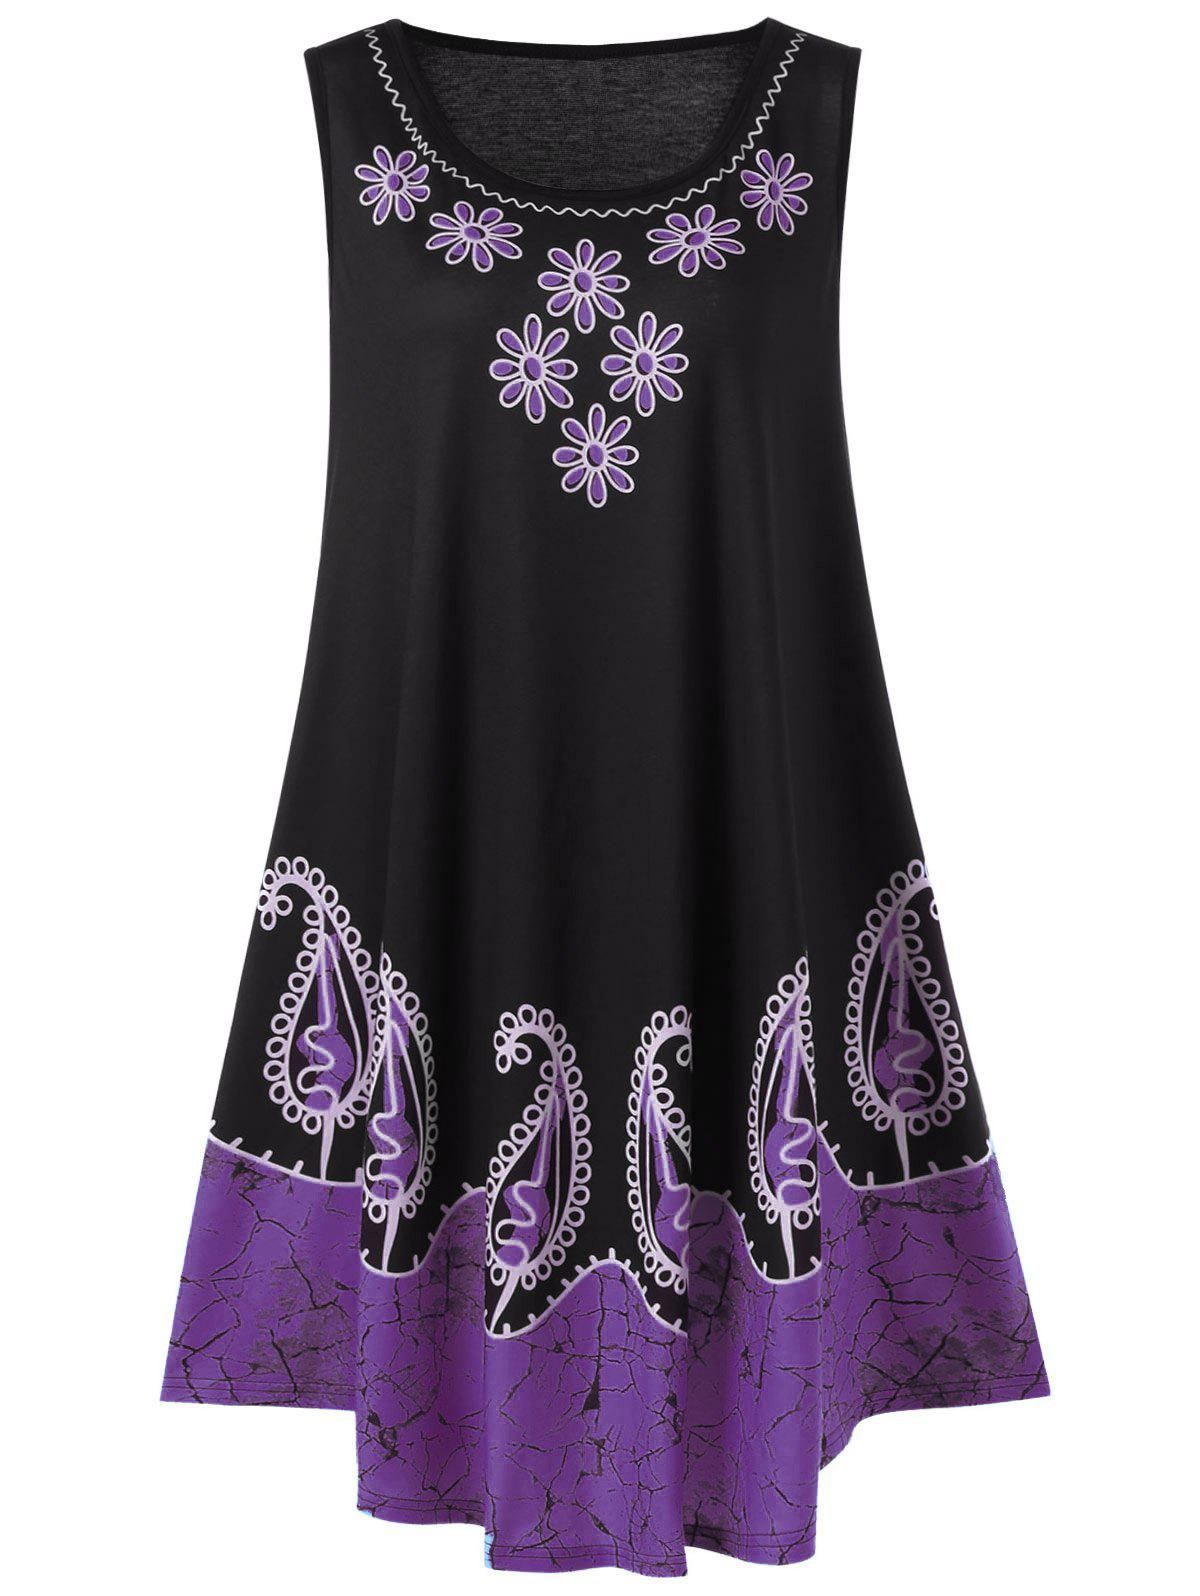 Plus Size Sleeveless Floral and Paisley Tank Tunic DressWOMEN<br><br>Size: 3XL; Color: PURPLE; Style: Casual; Material: Polyester,Spandex; Silhouette: A-Line; Dresses Length: Knee-Length; Neckline: Scoop Neck; Sleeve Length: Sleeveless; Pattern Type: Floral,Paisley; With Belt: No; Season: Summer; Weight: 0.4000kg; Package Contents: 1 x Dress;